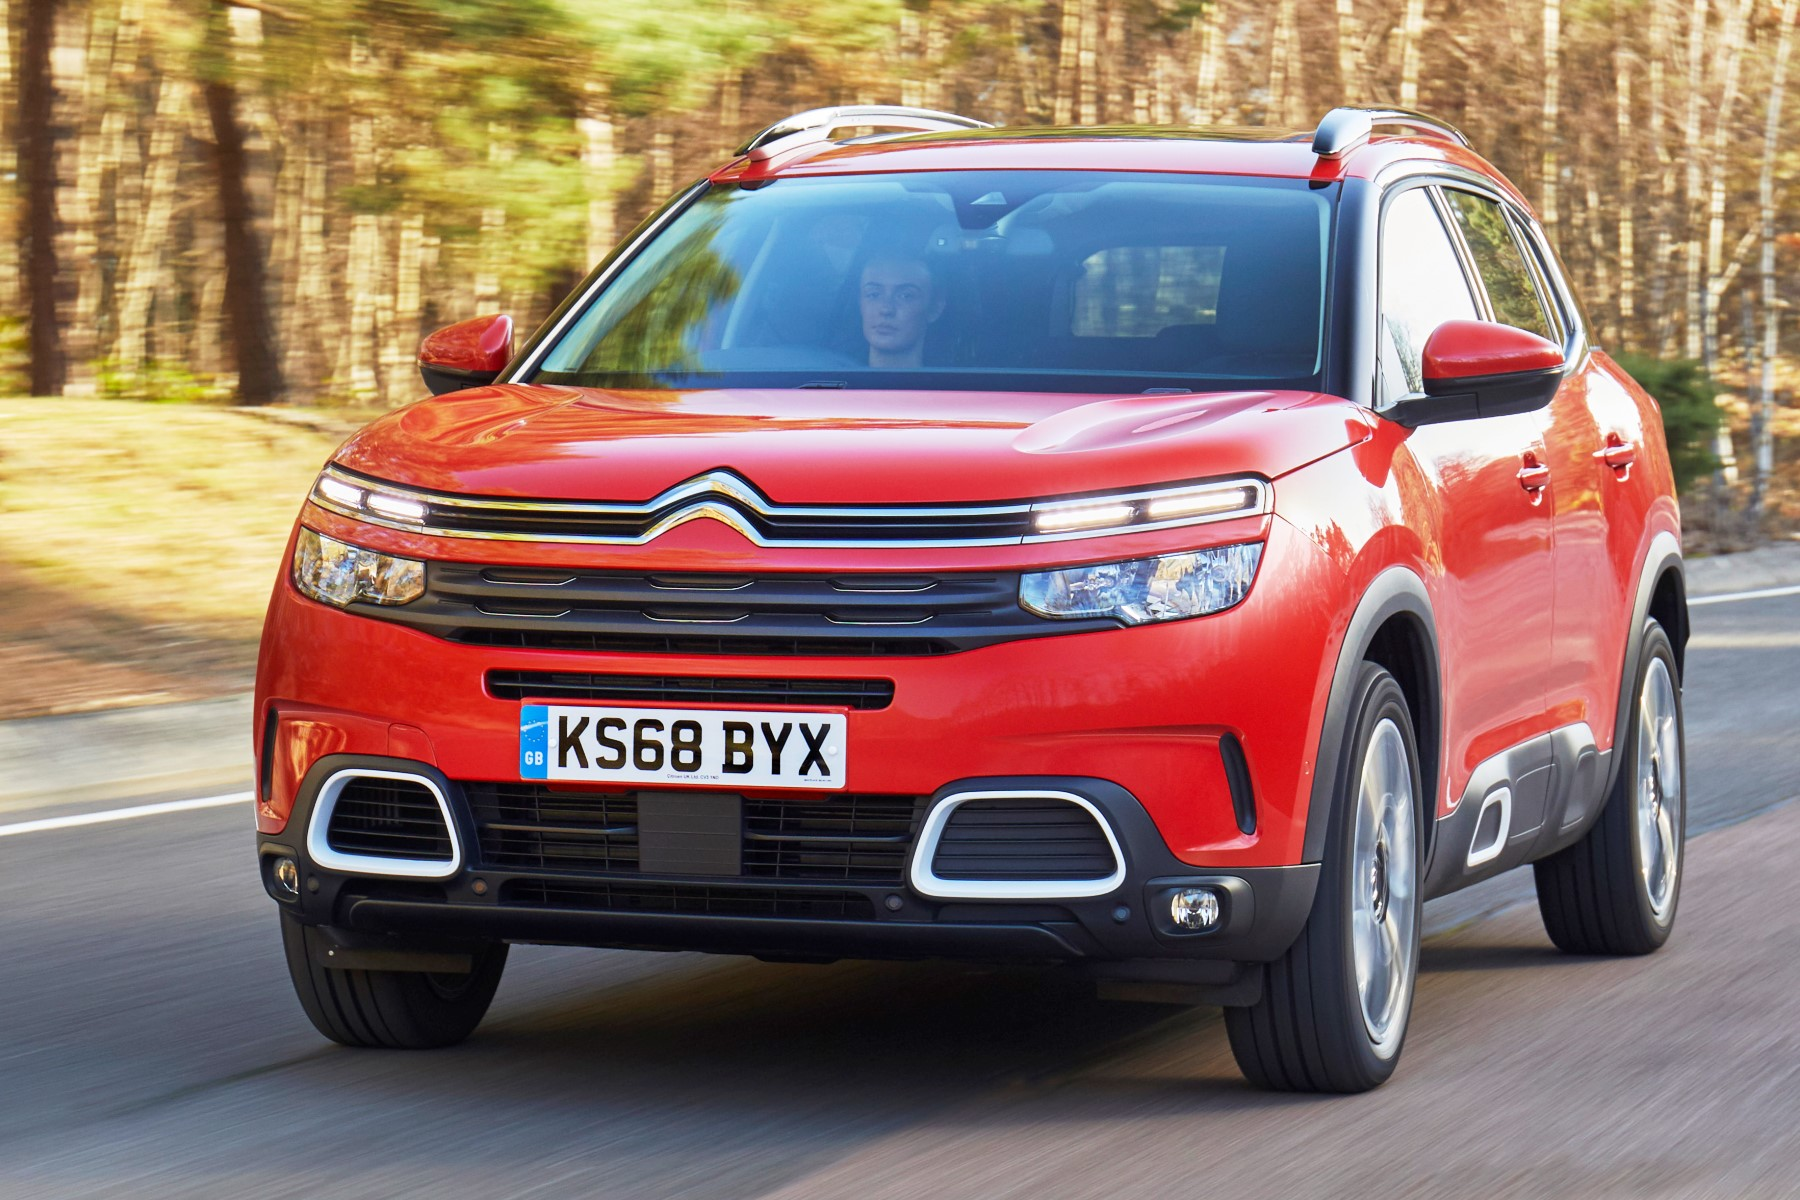 citroen c5 aircross review automotive blog. Black Bedroom Furniture Sets. Home Design Ideas